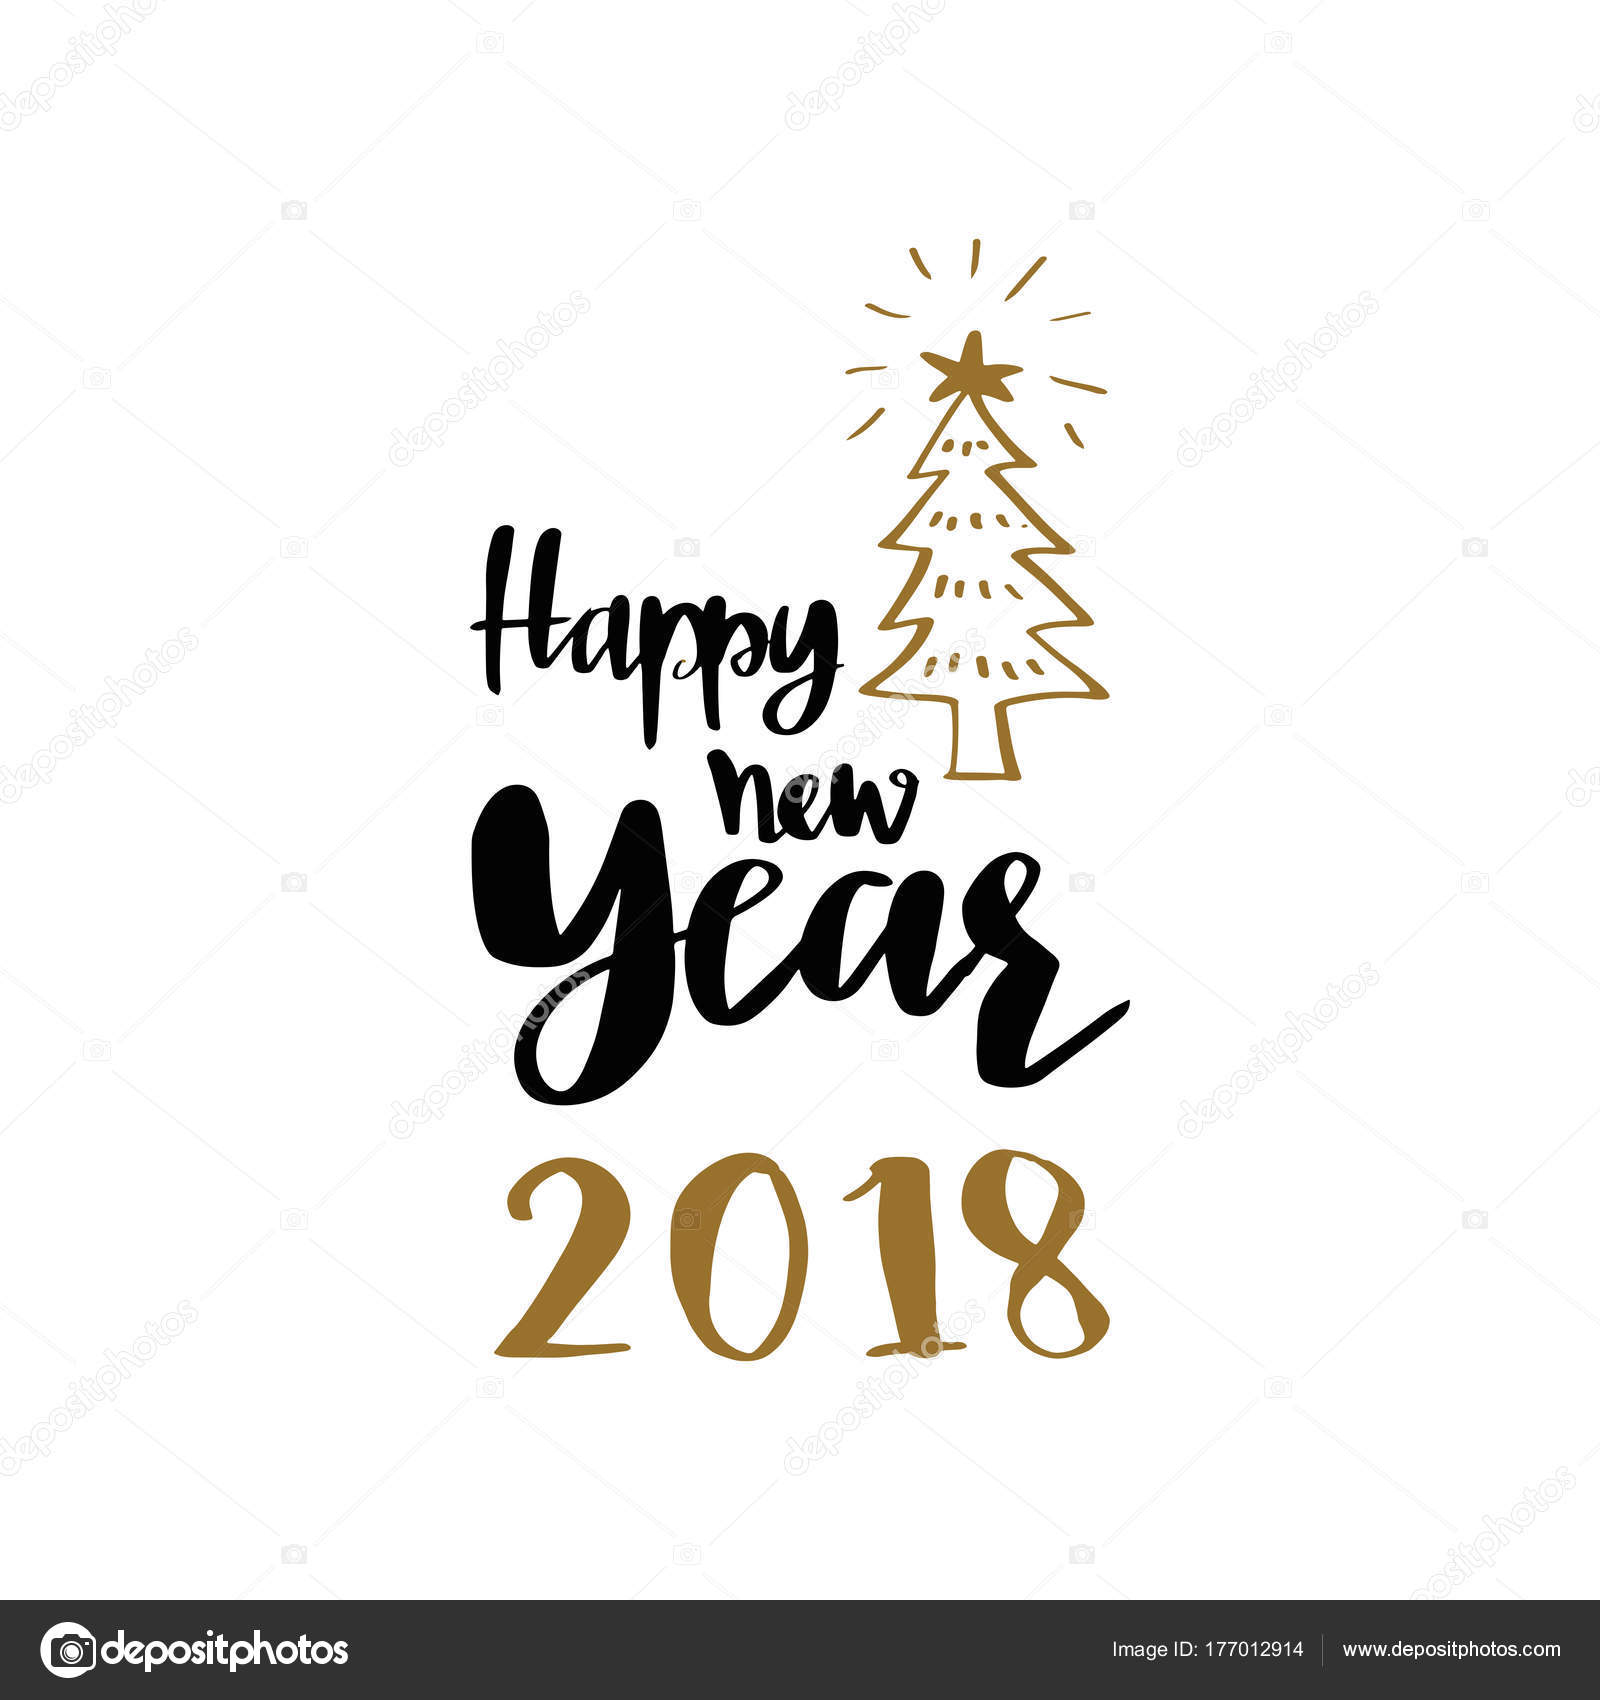 Christmas tree and Happy new year 2018 lettering calligraphy     Christmas tree and Happy new year 2018 lettering calligraphy  illustration  vector greeting and invitation card